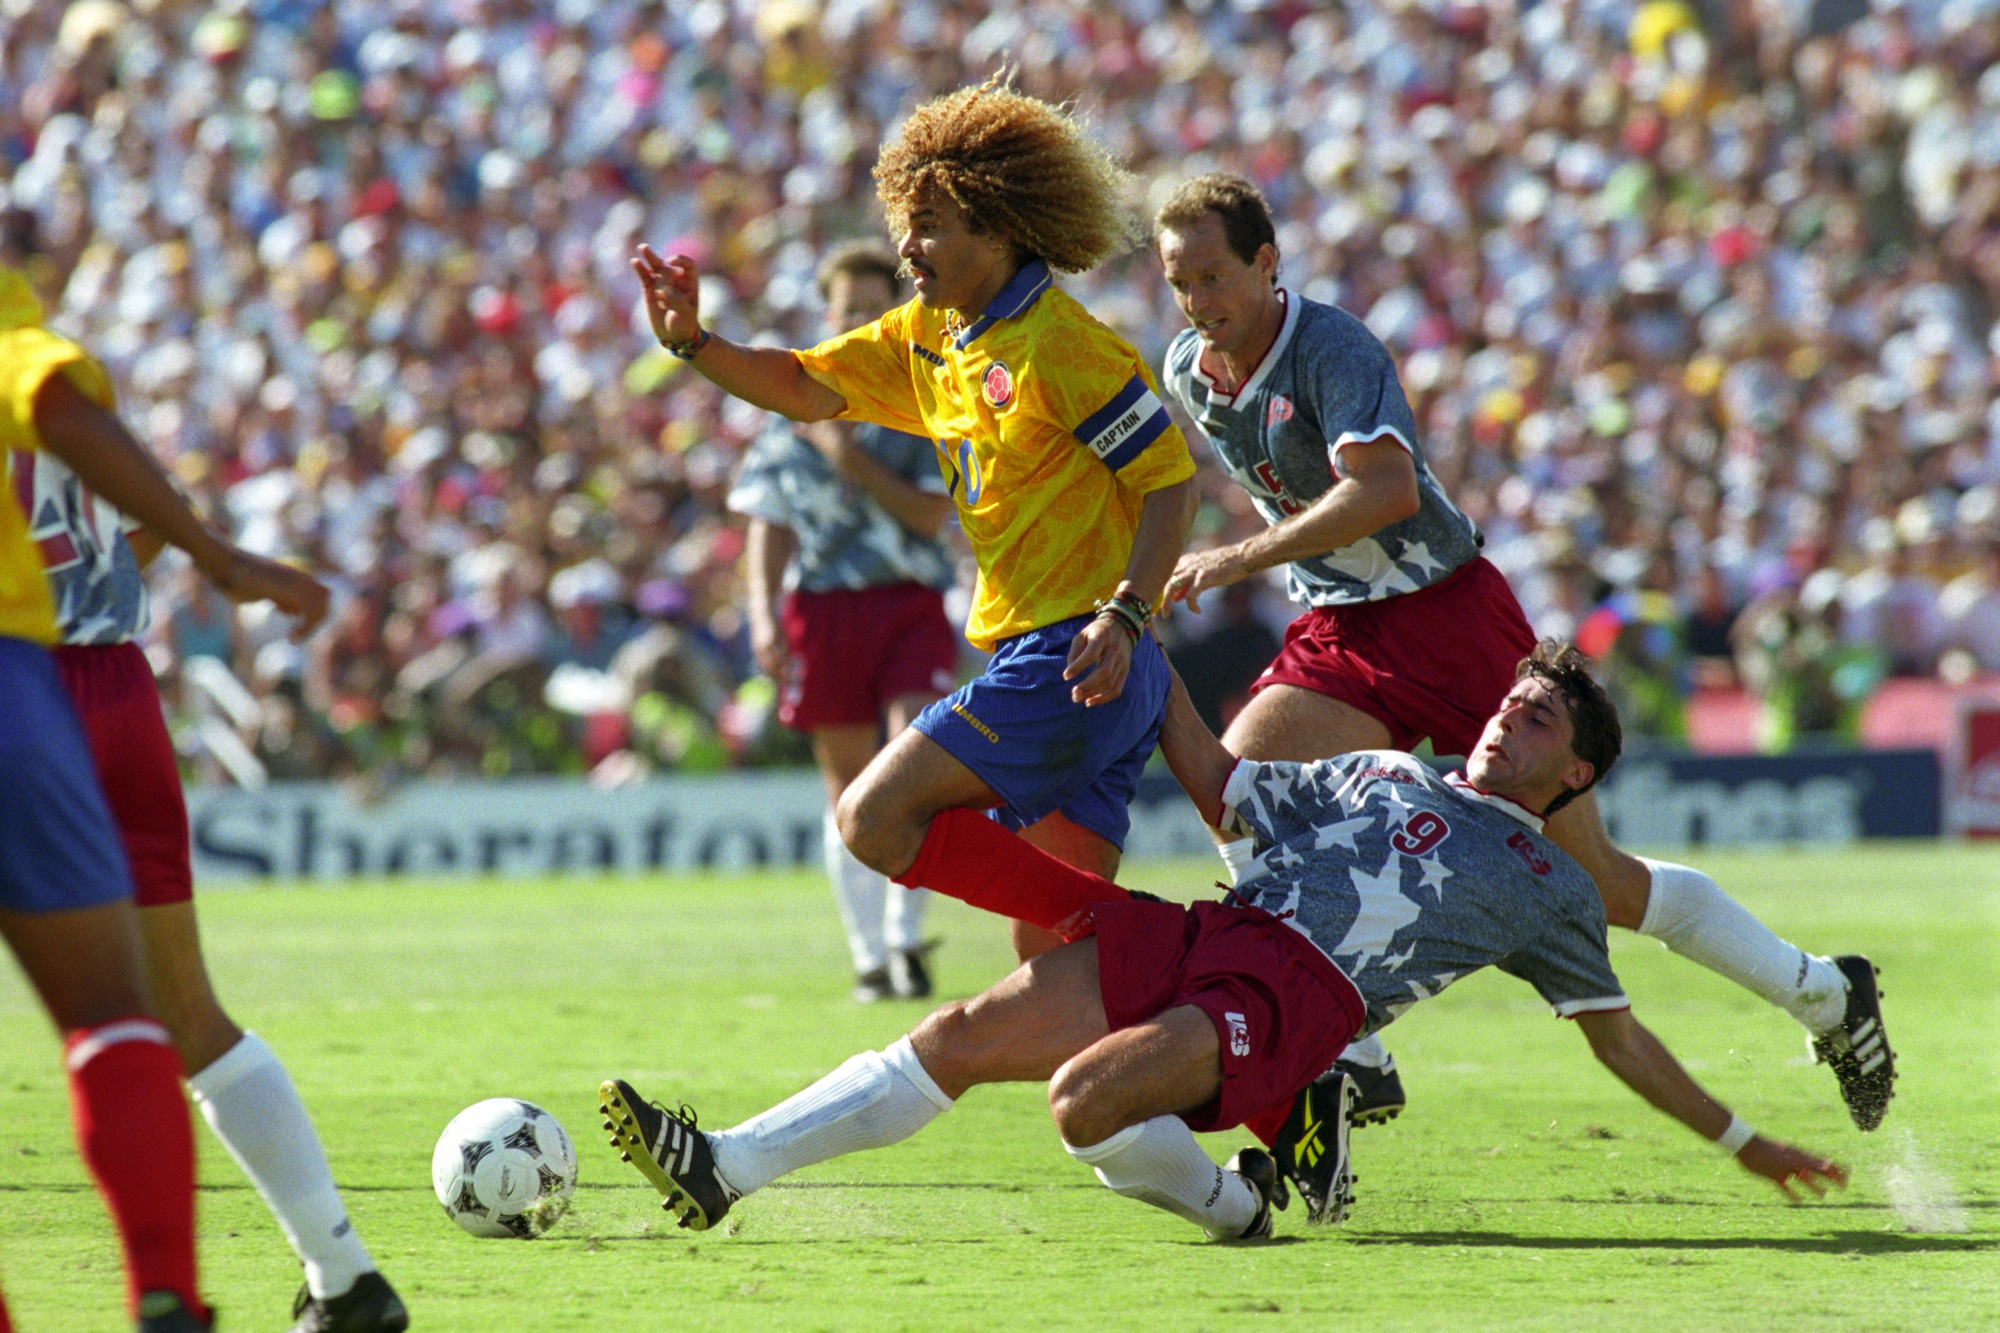 Carlos Valderrama, the best player in the history of Colombia